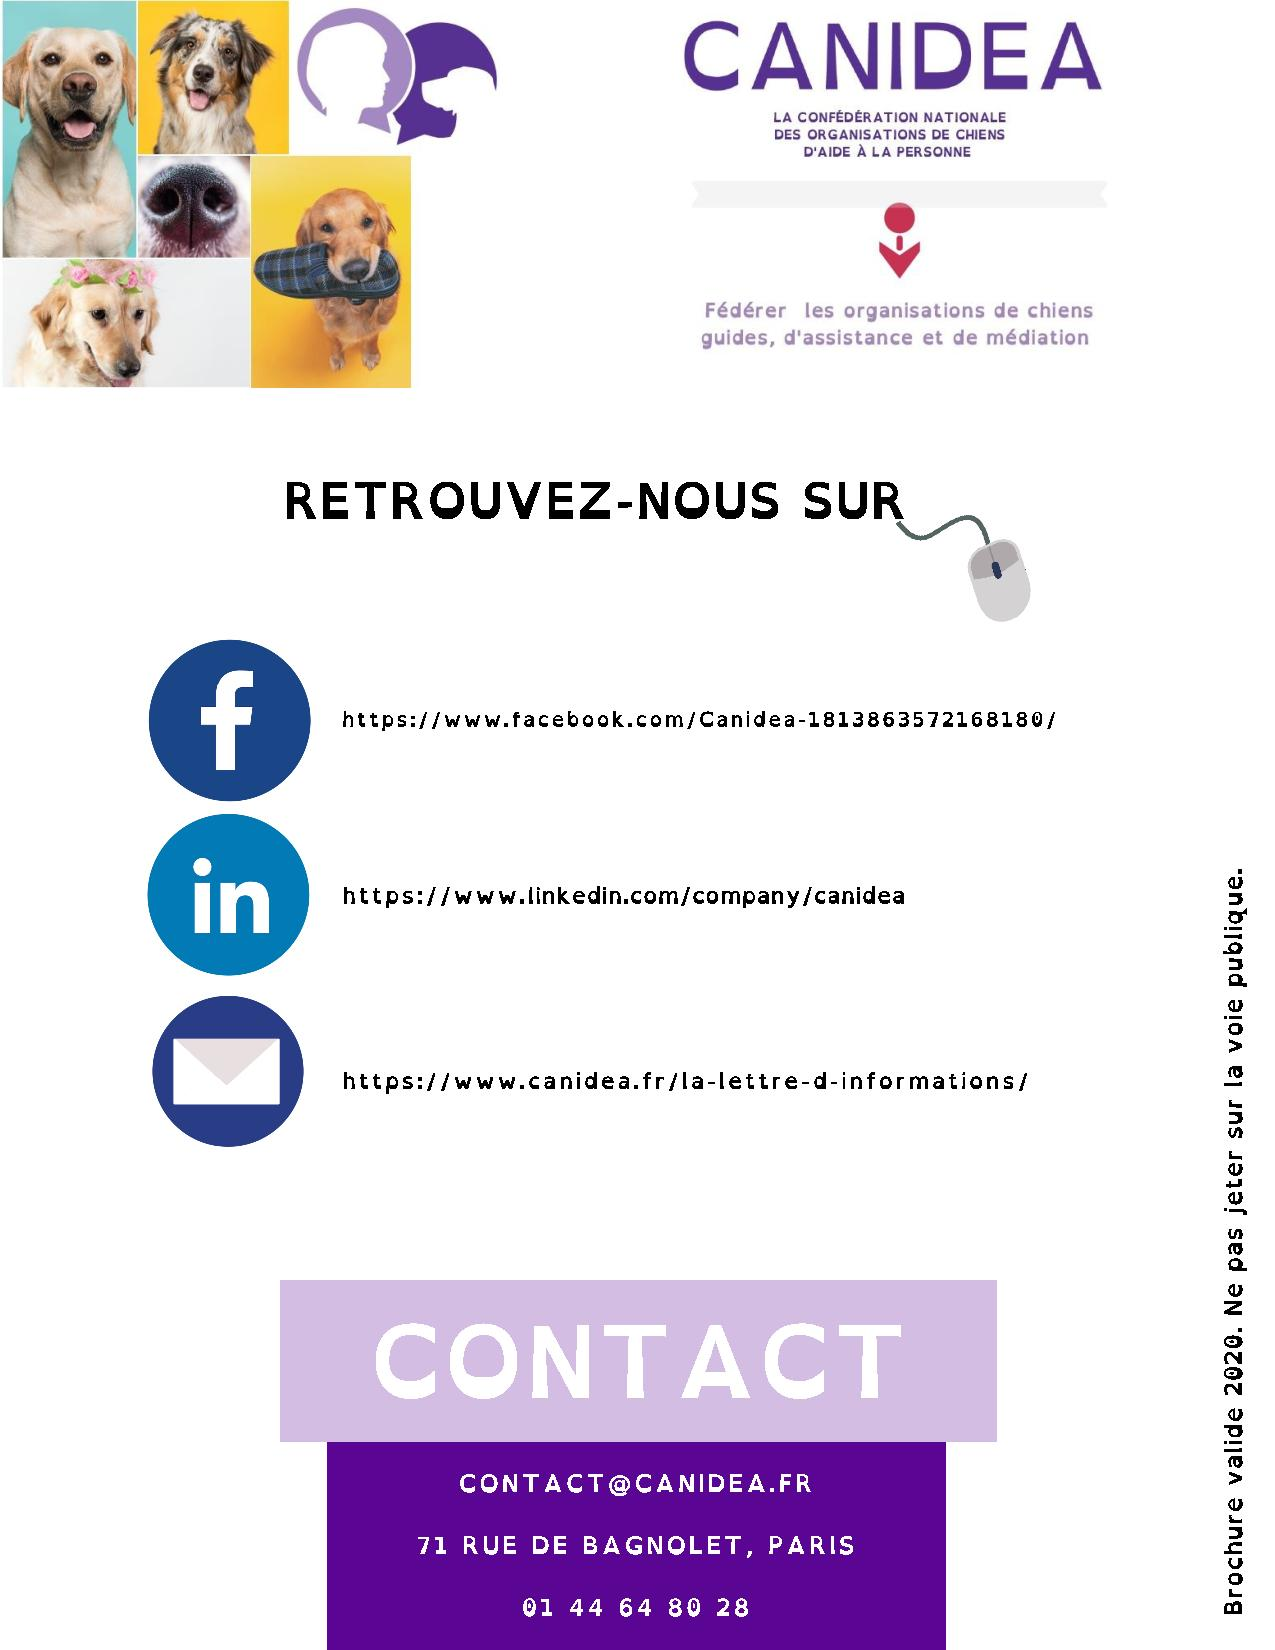 CANIDEA -Brochure chiens guides-assistance-page-024